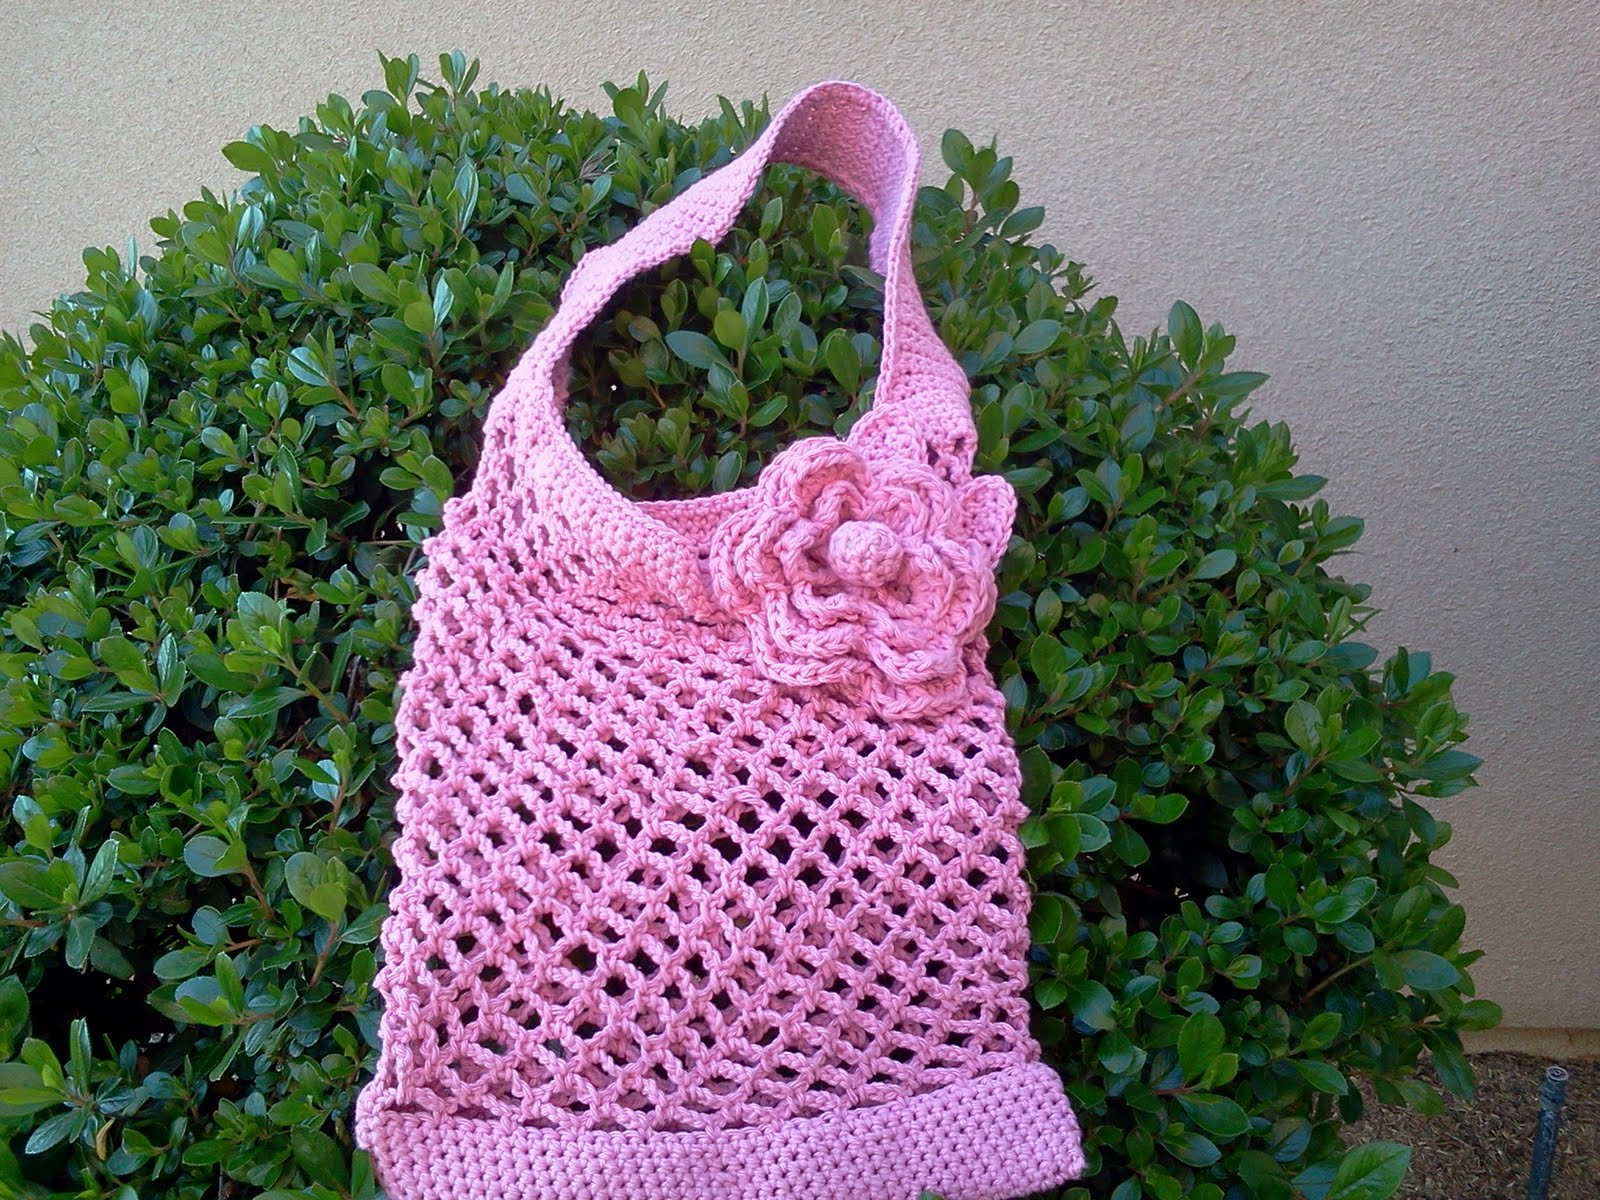 MESH SHOPPING BAG CROCHET PATTERN - Easy Crochet Patterns